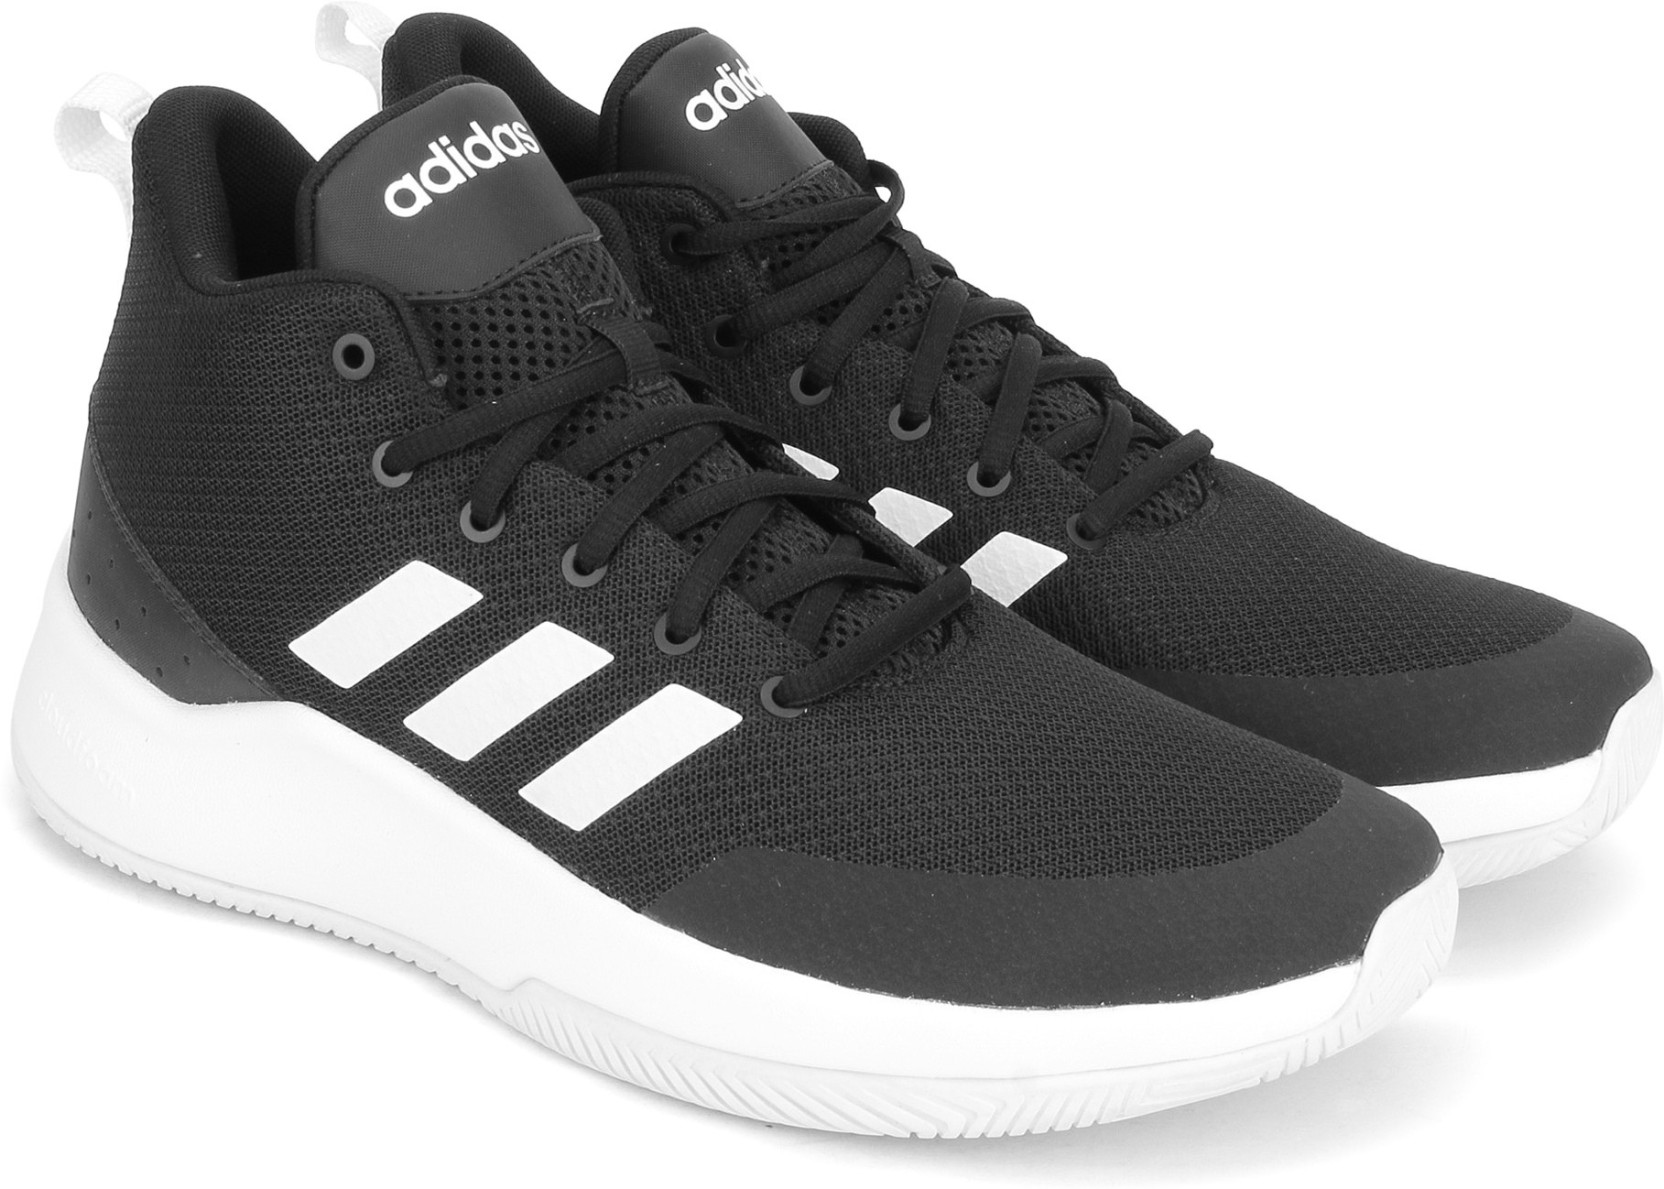 on sale 5a71c 9c1f4 ADIDAS SPEEDEND2END Basketball Shoes For Men. ADD TO CART